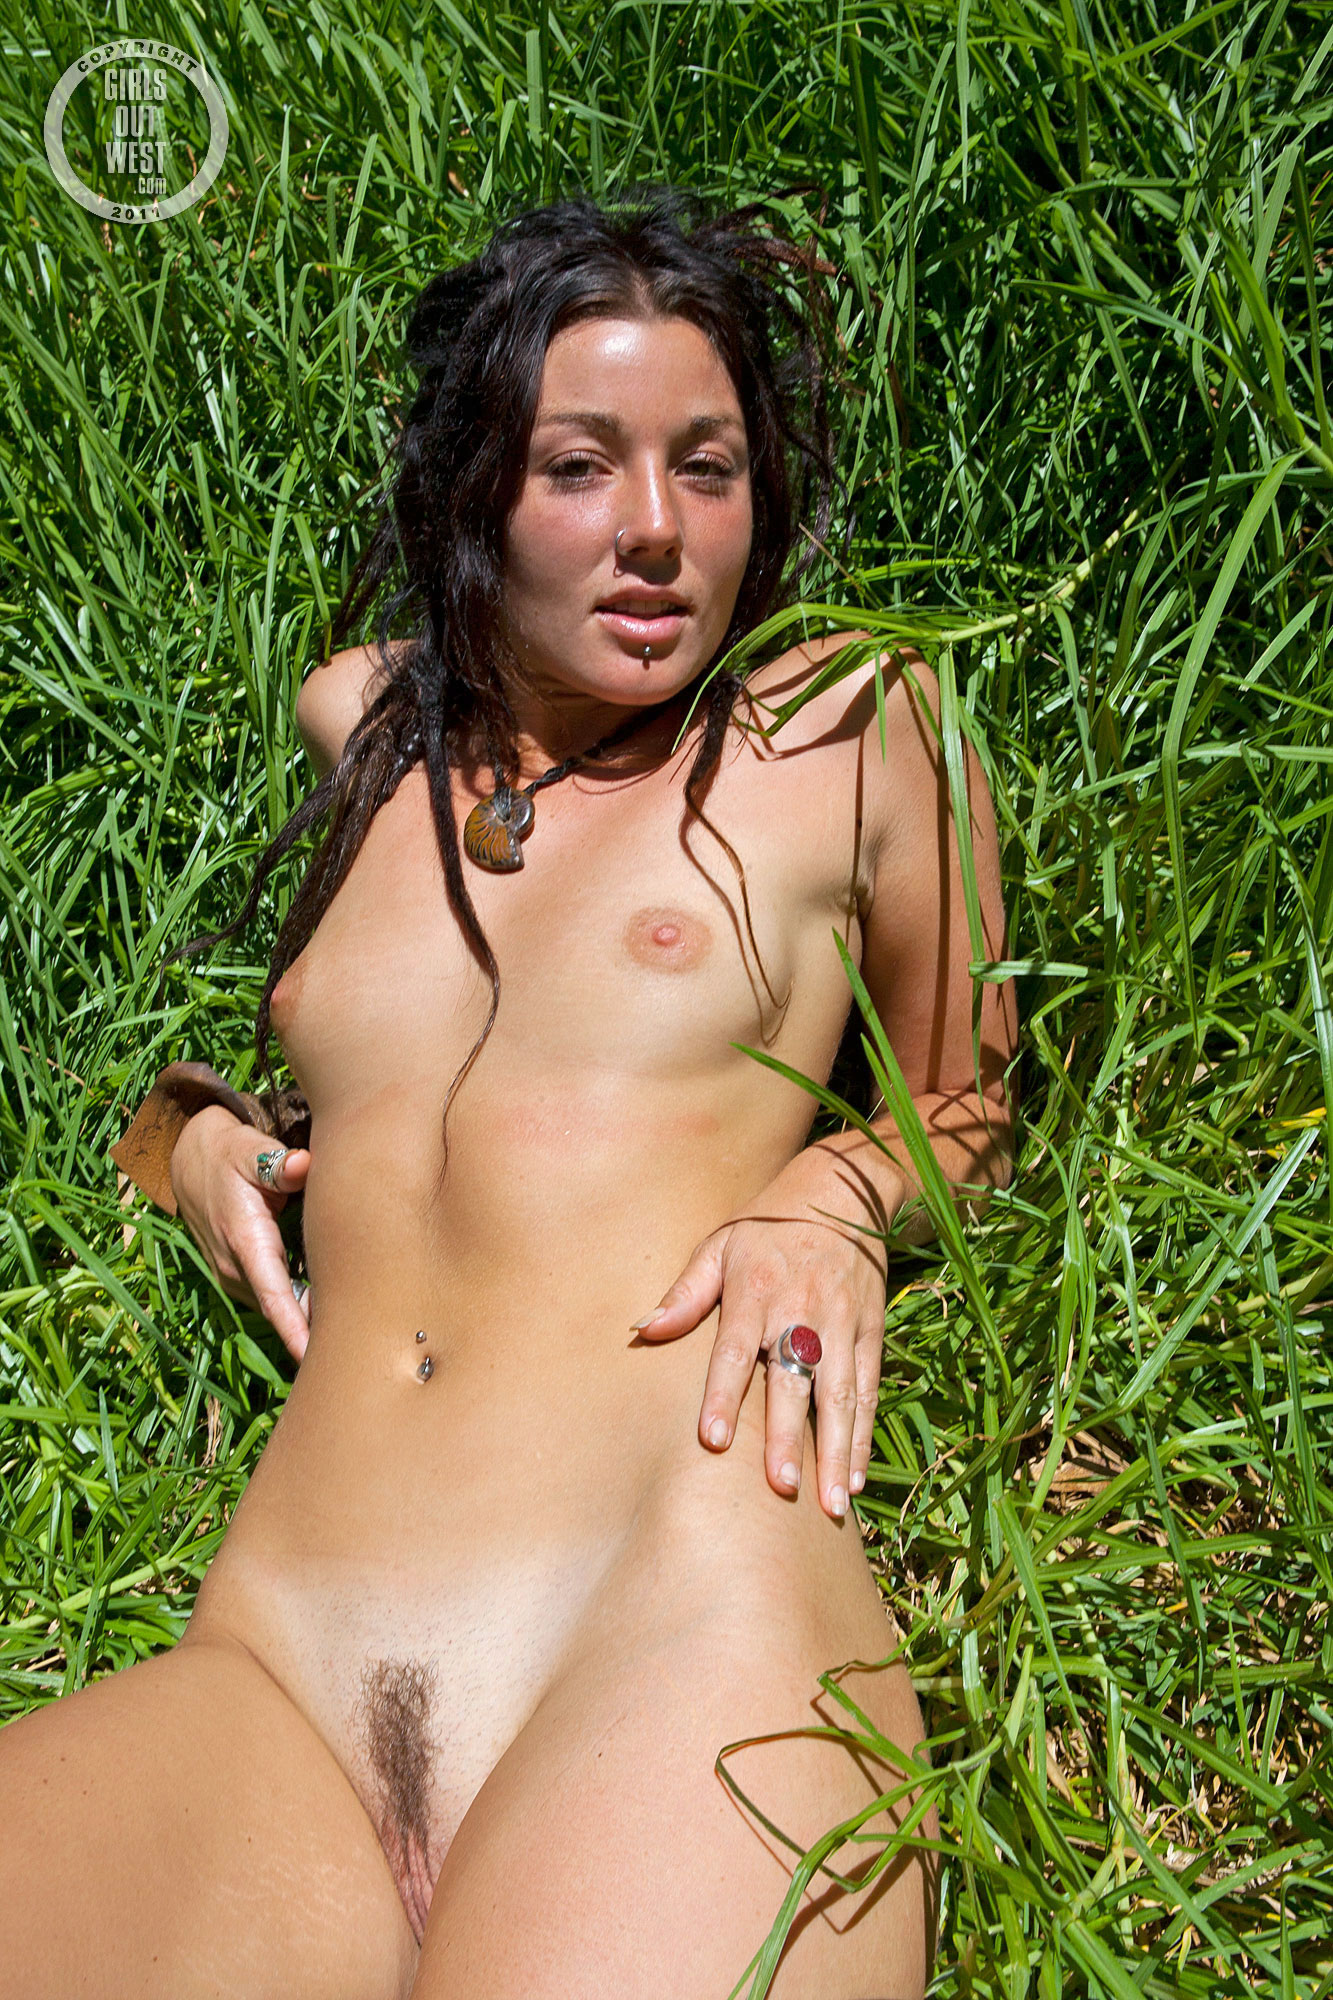 Woman with dreads nude